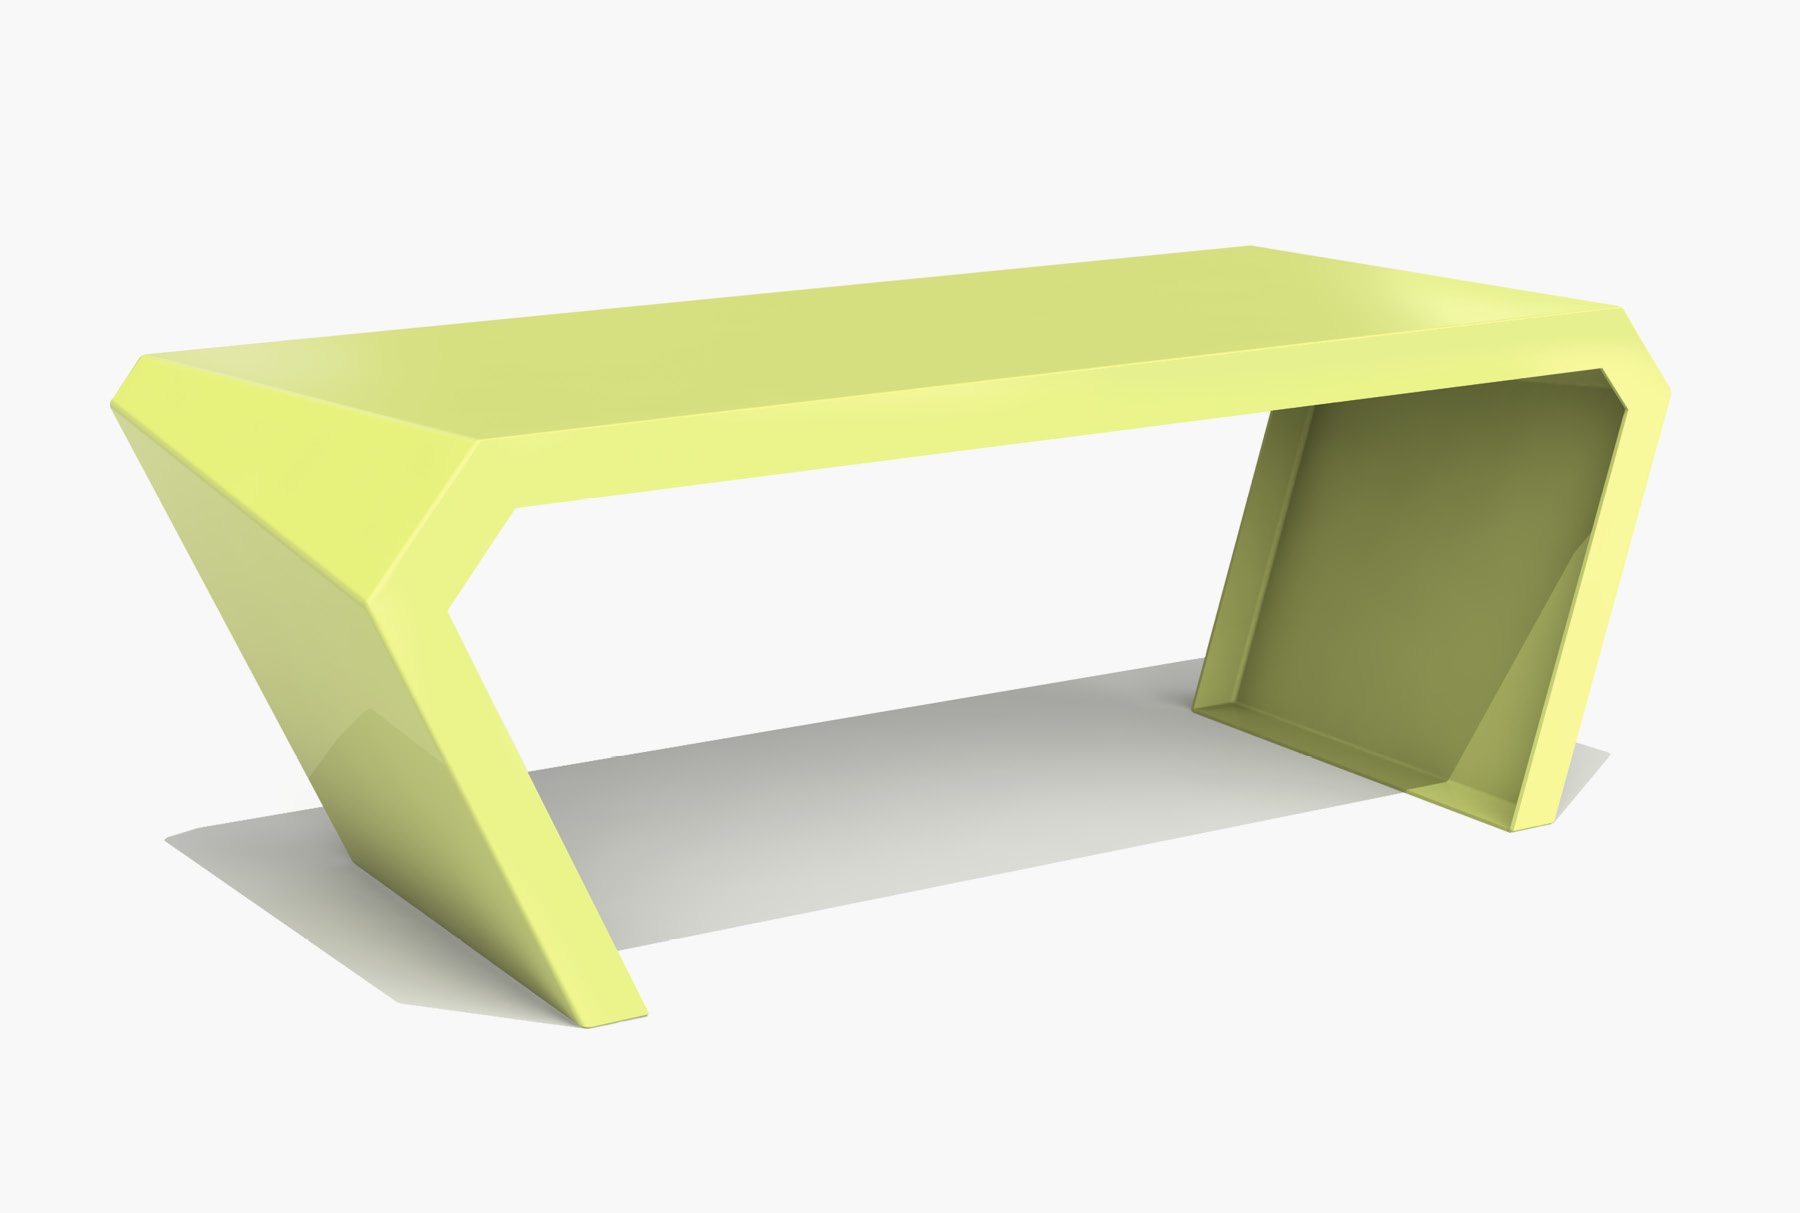 Arktura Pac Desk in Lush Green